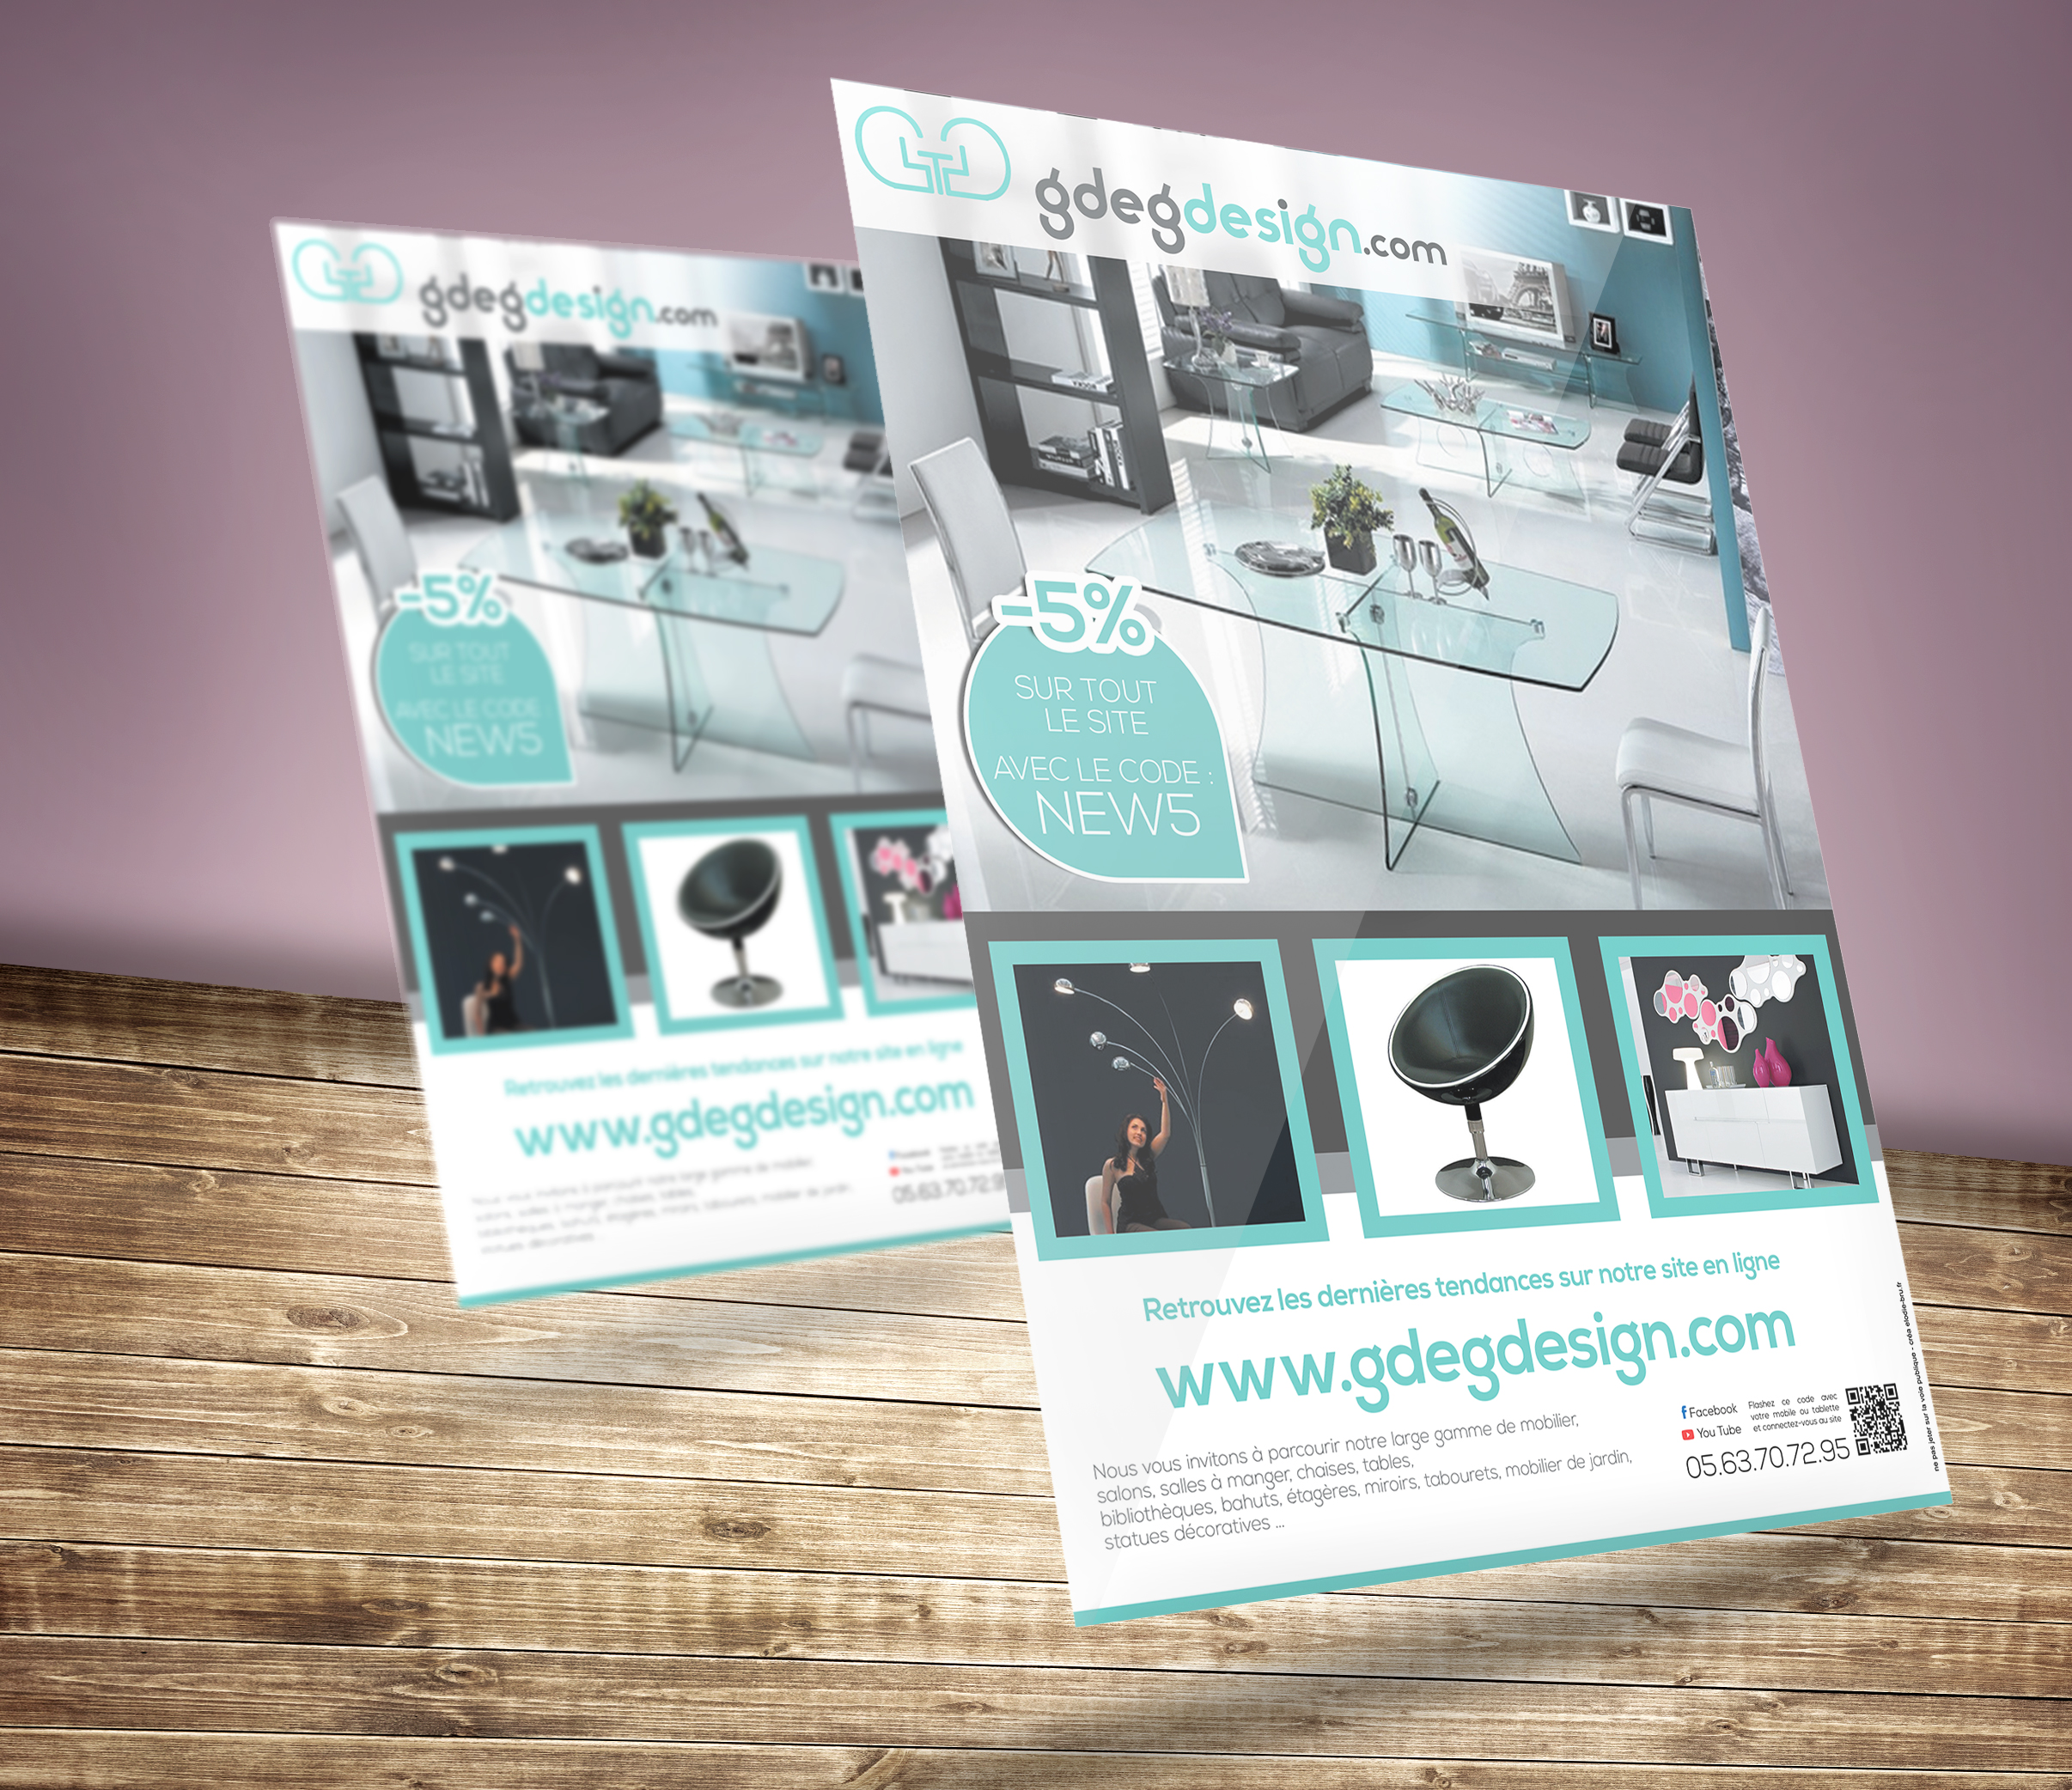 flyer-gdegdesign